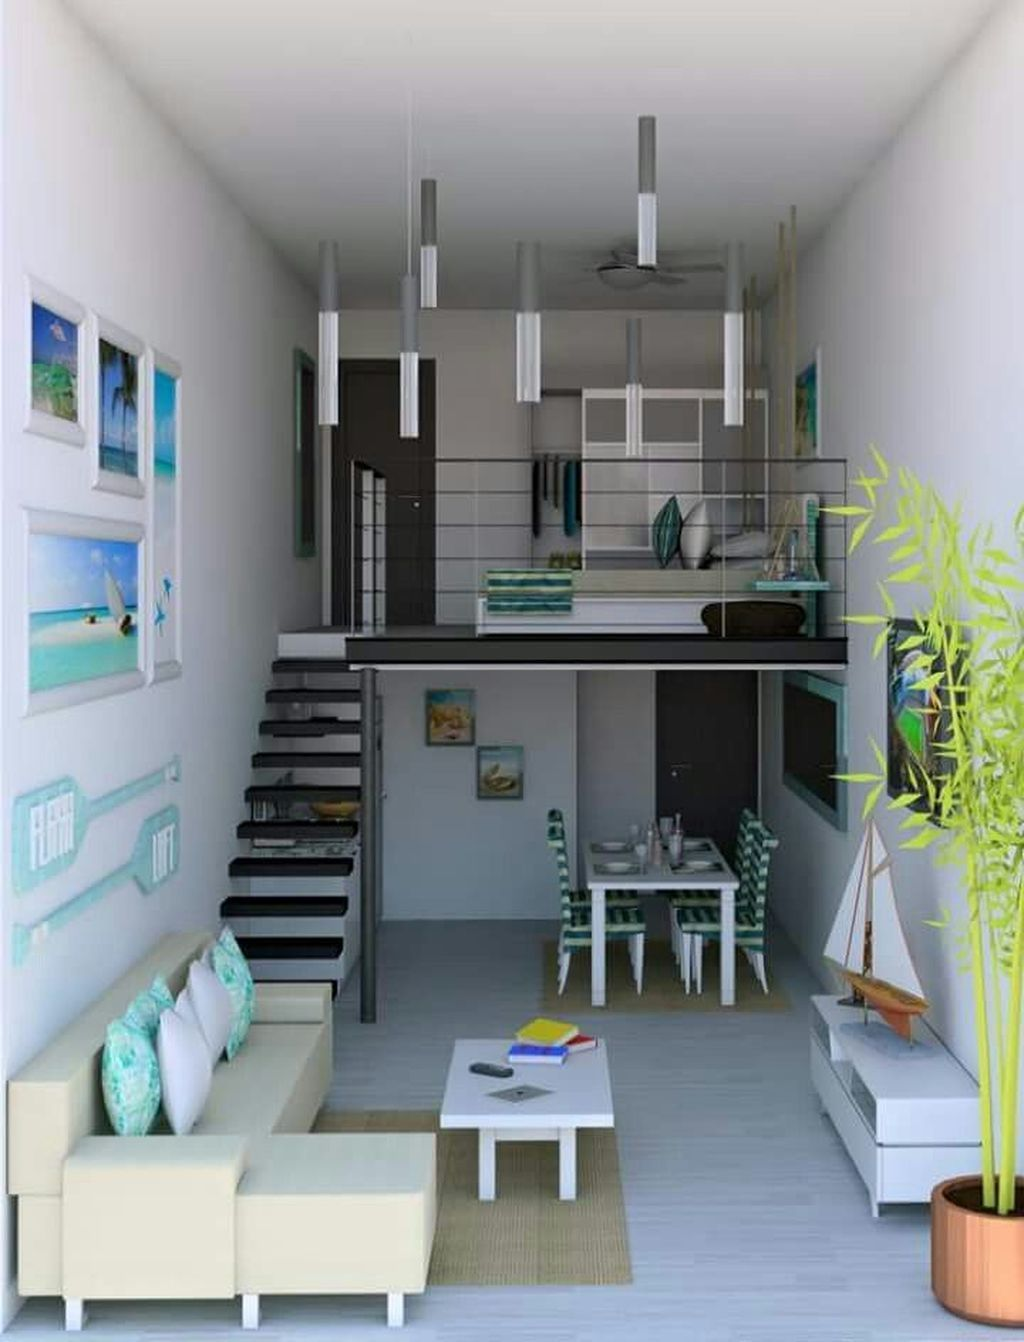 Awesome tiny house interior ideas 28 apartment design small house interior design small house